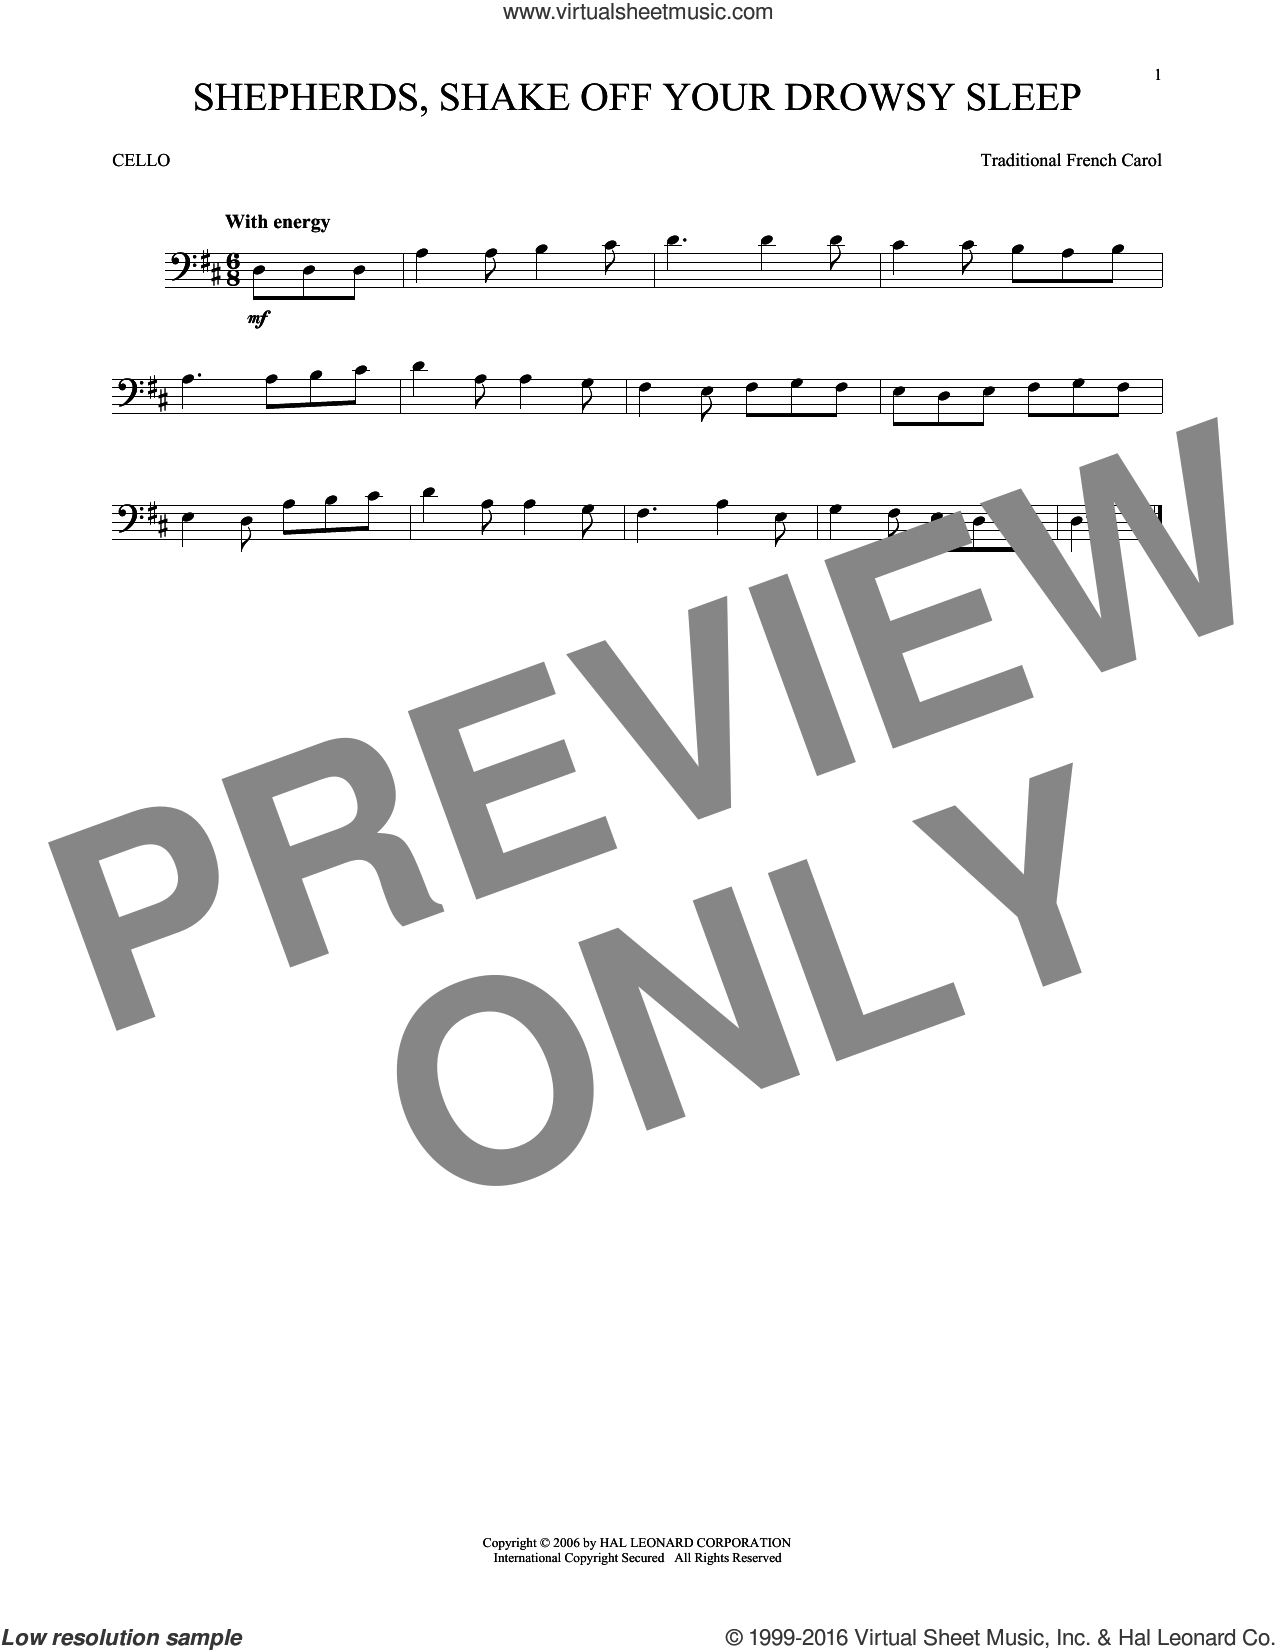 Shepherds, Shake Off Your Drowsy Sleep sheet music for cello solo, intermediate. Score Image Preview.